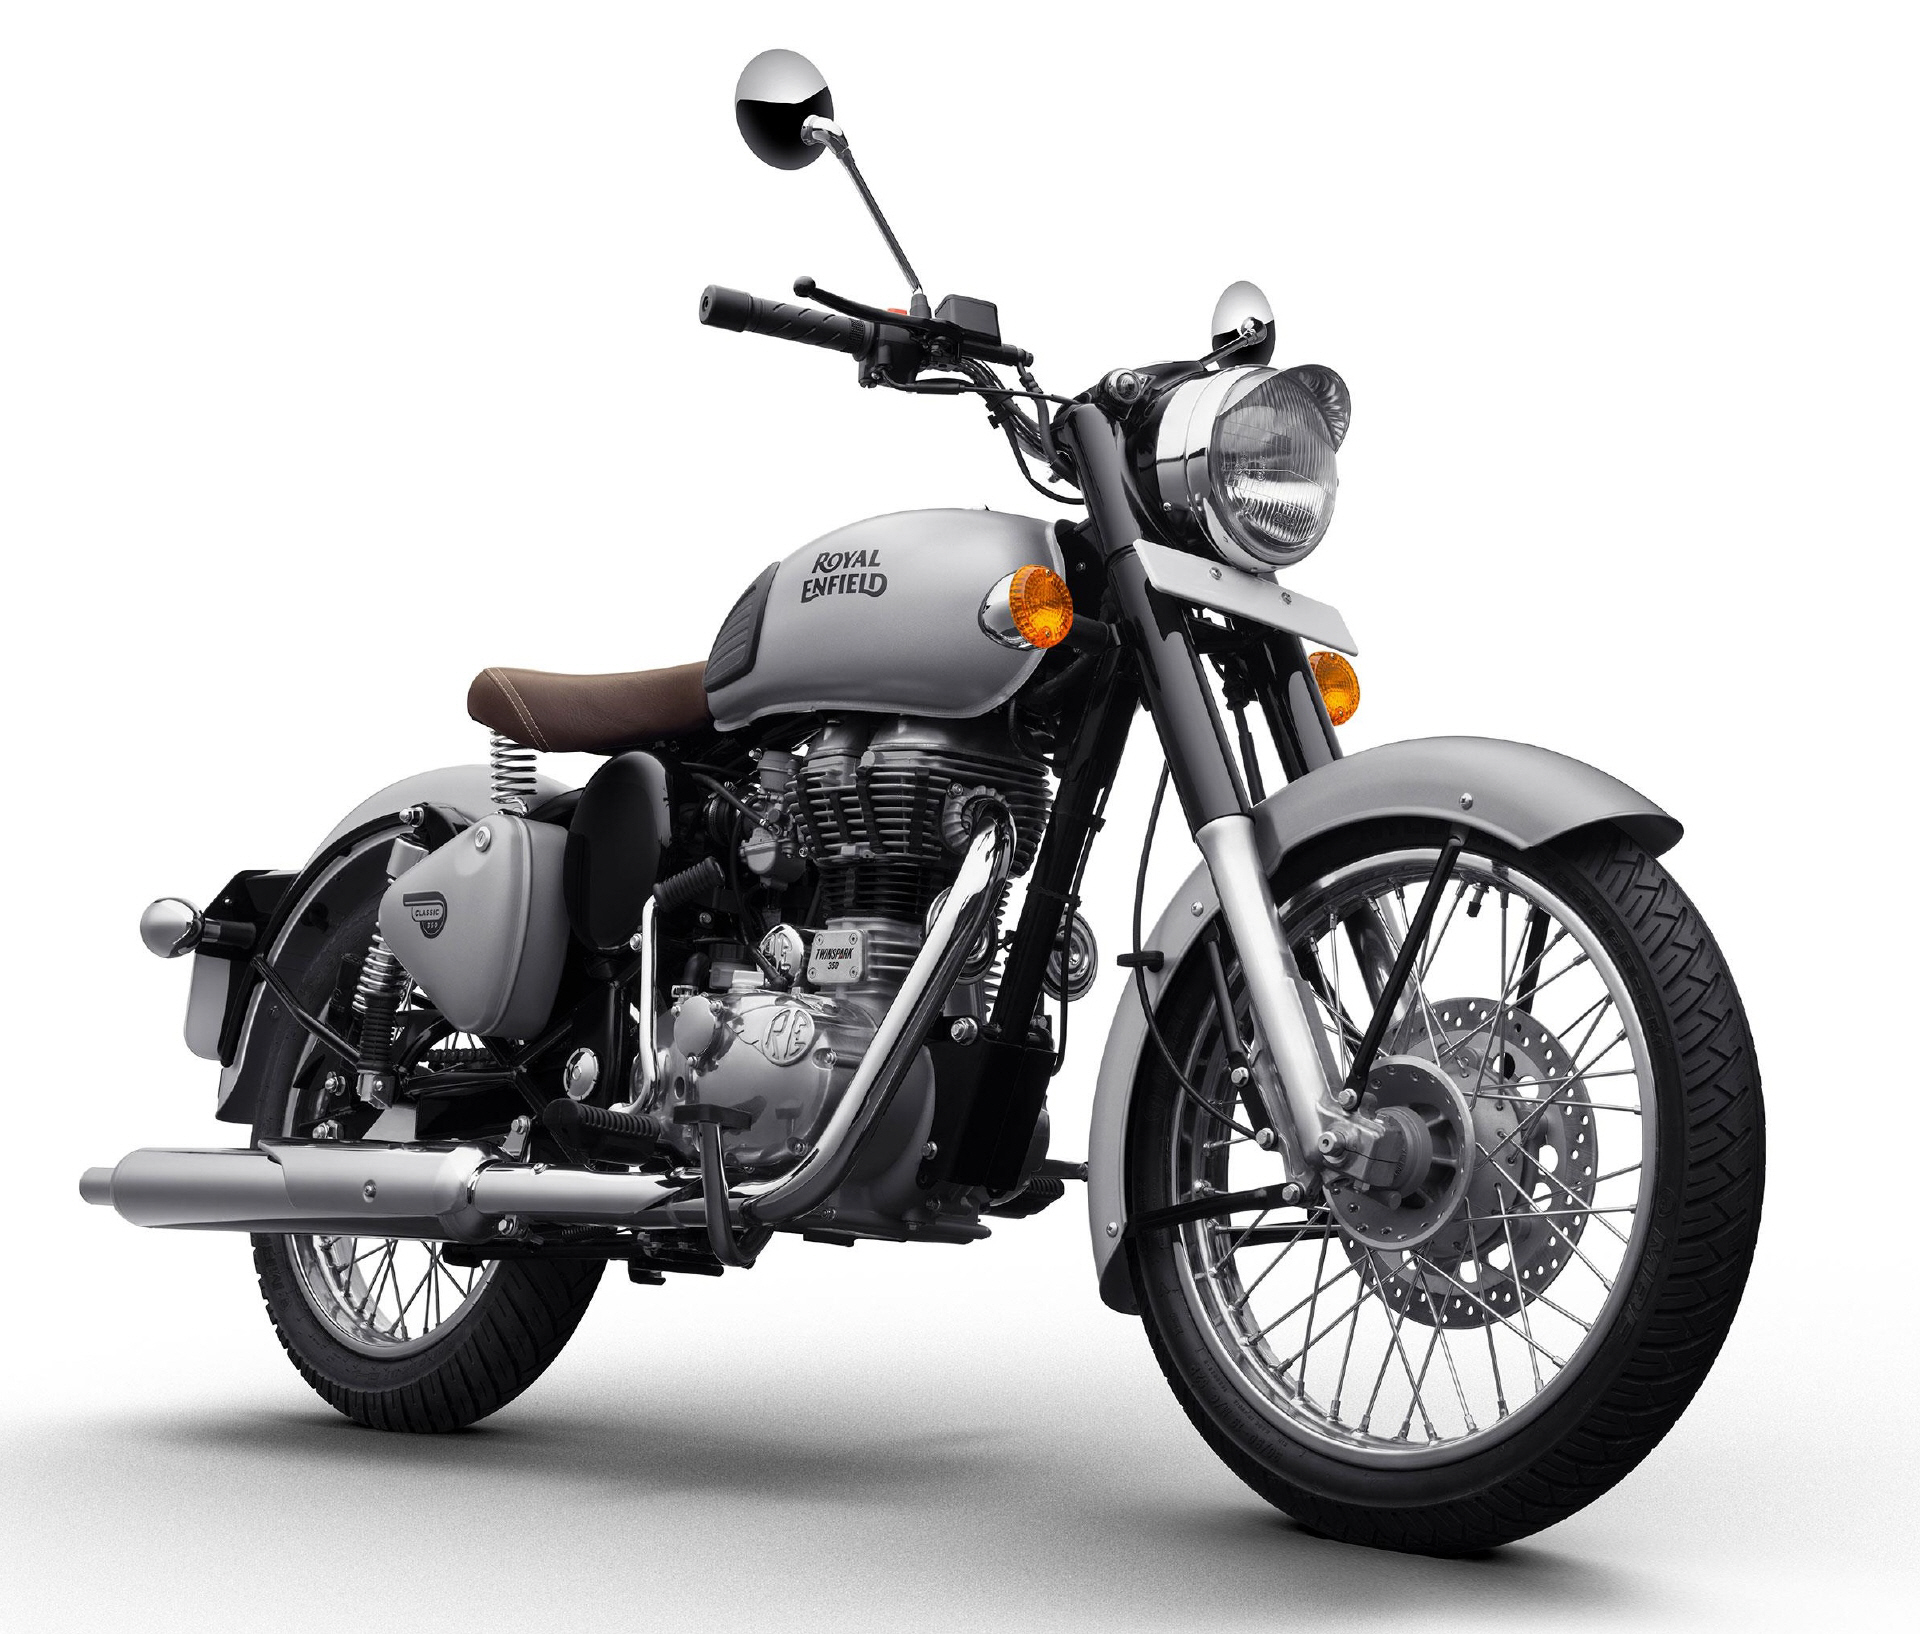 royalenfield_classic500_gunmetal_02jpg